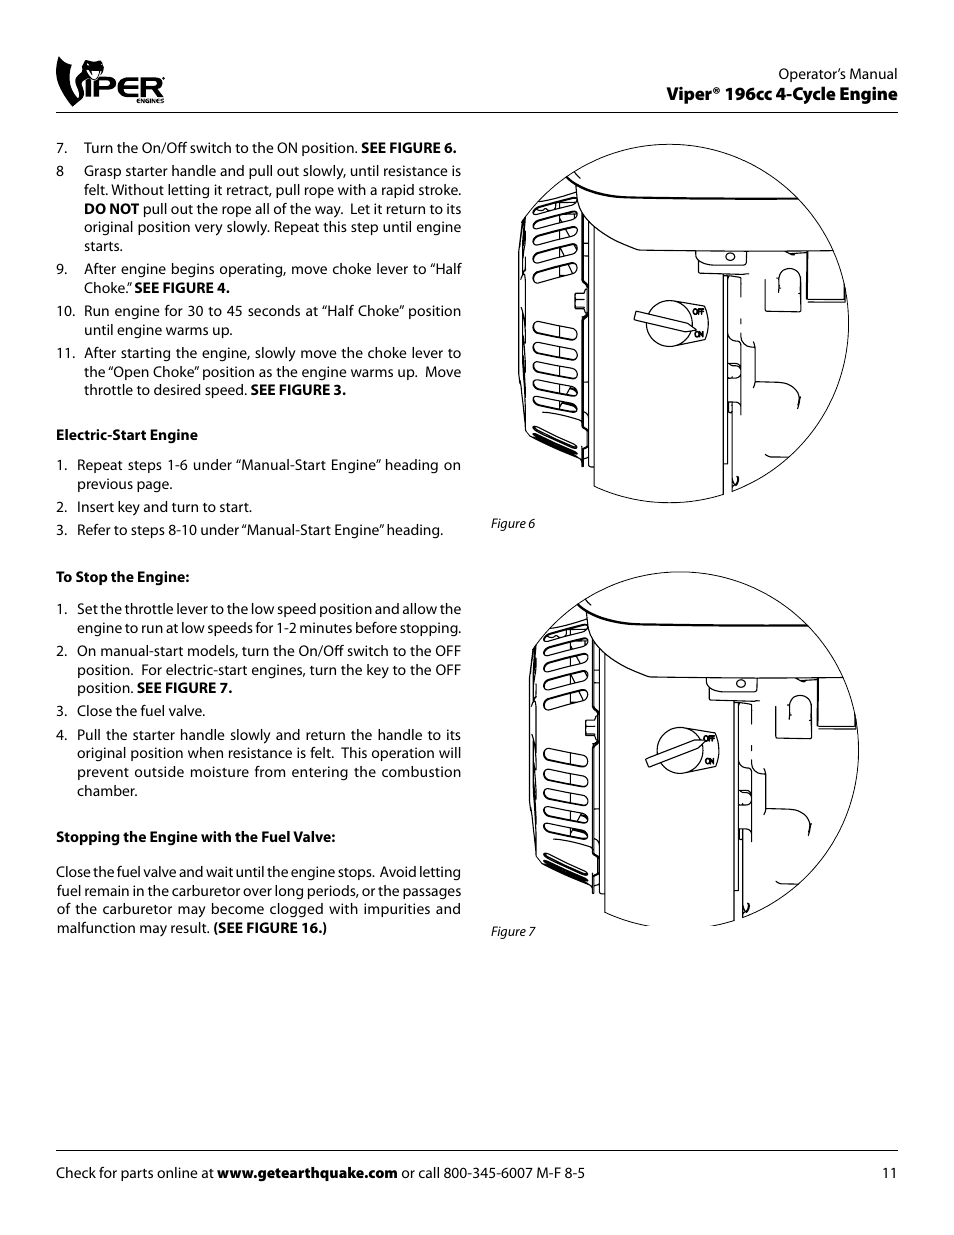 Viper 196cc 4 Cycle Engine Earthquake 9060300 User Manual Page Four Diagram 11